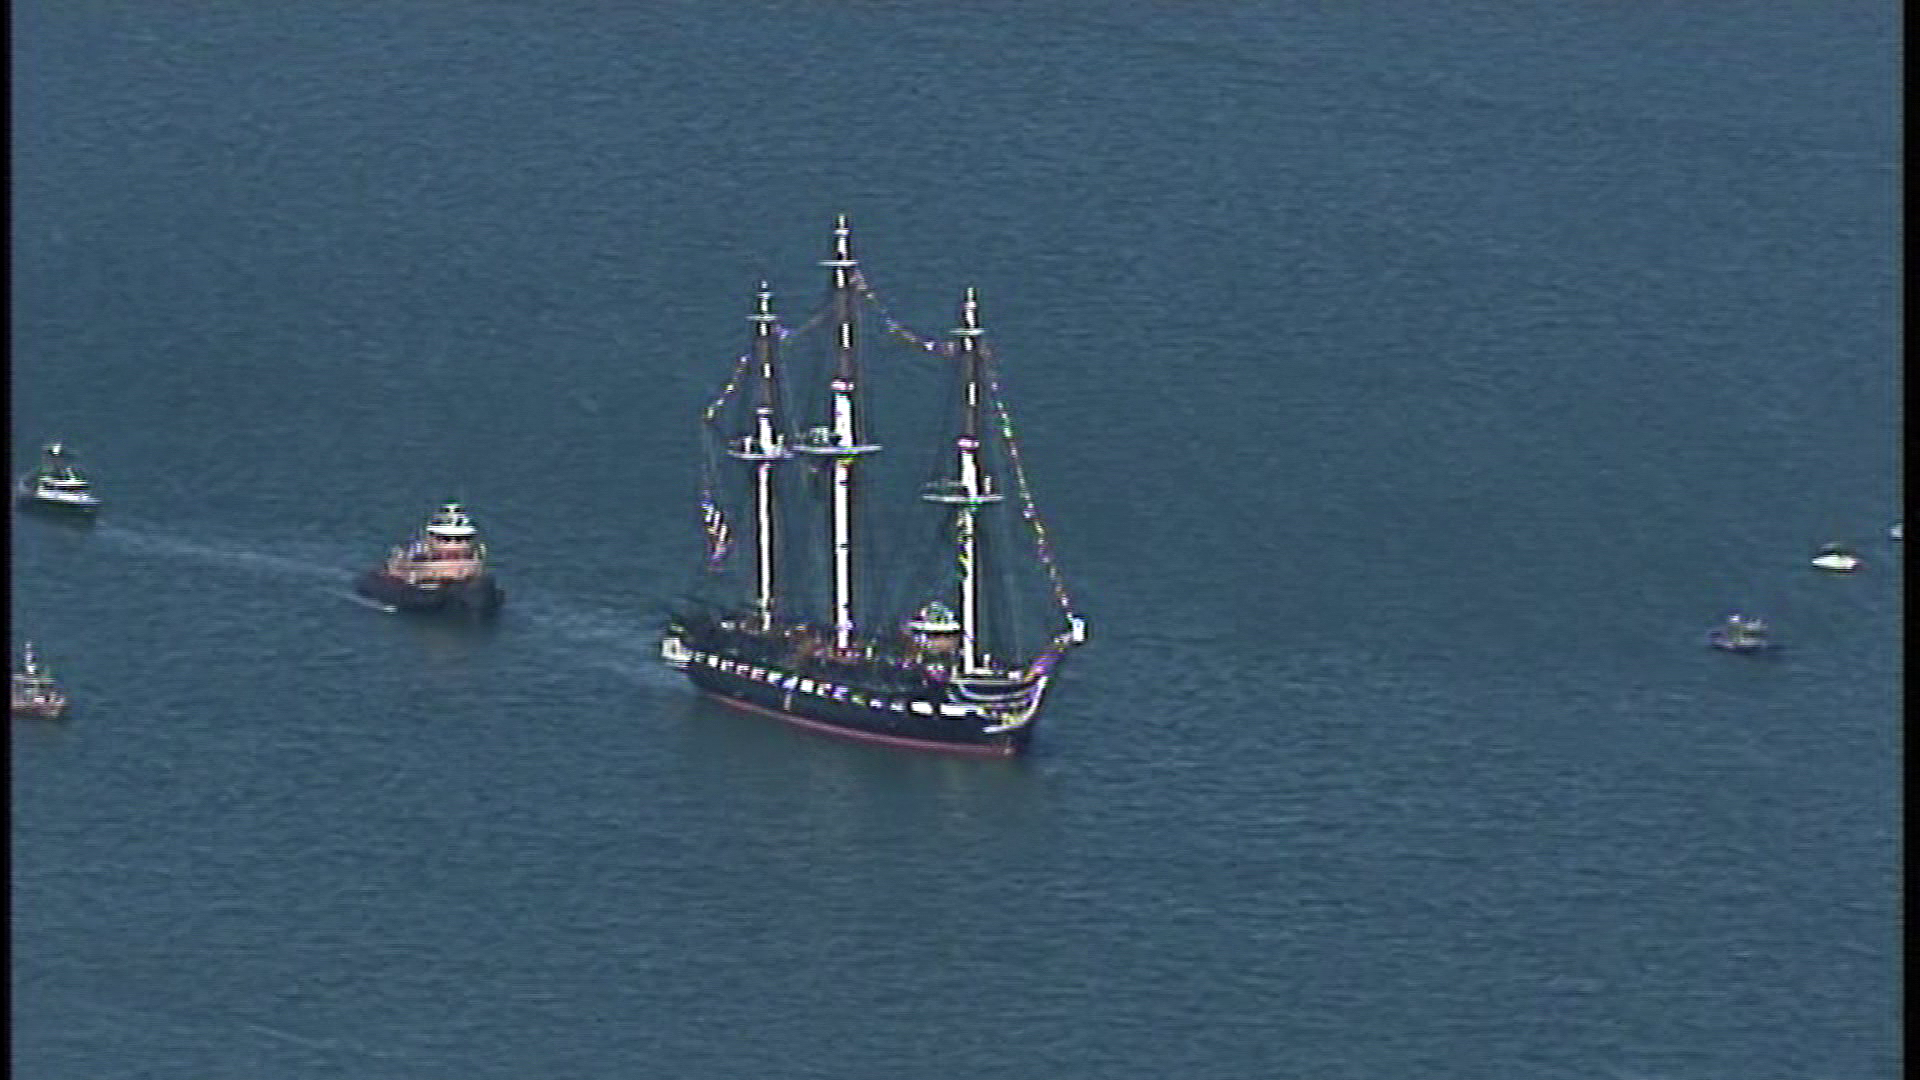 USS Constitution sails on Oct. 20, 2017